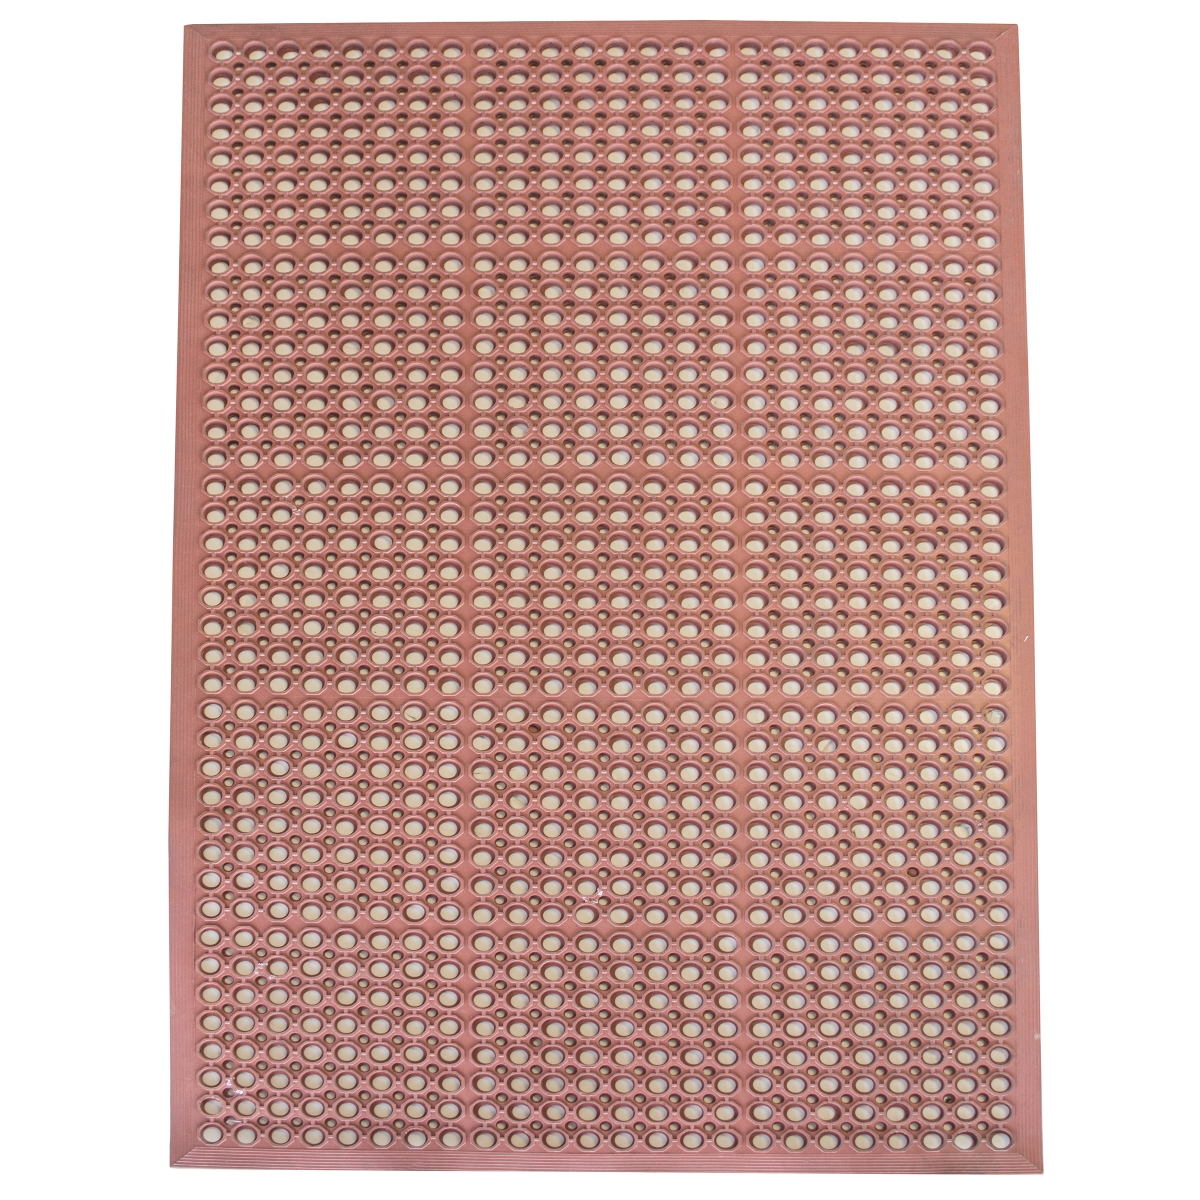 3 x 5 Foot Industrial Rubber Floor Mat - Red